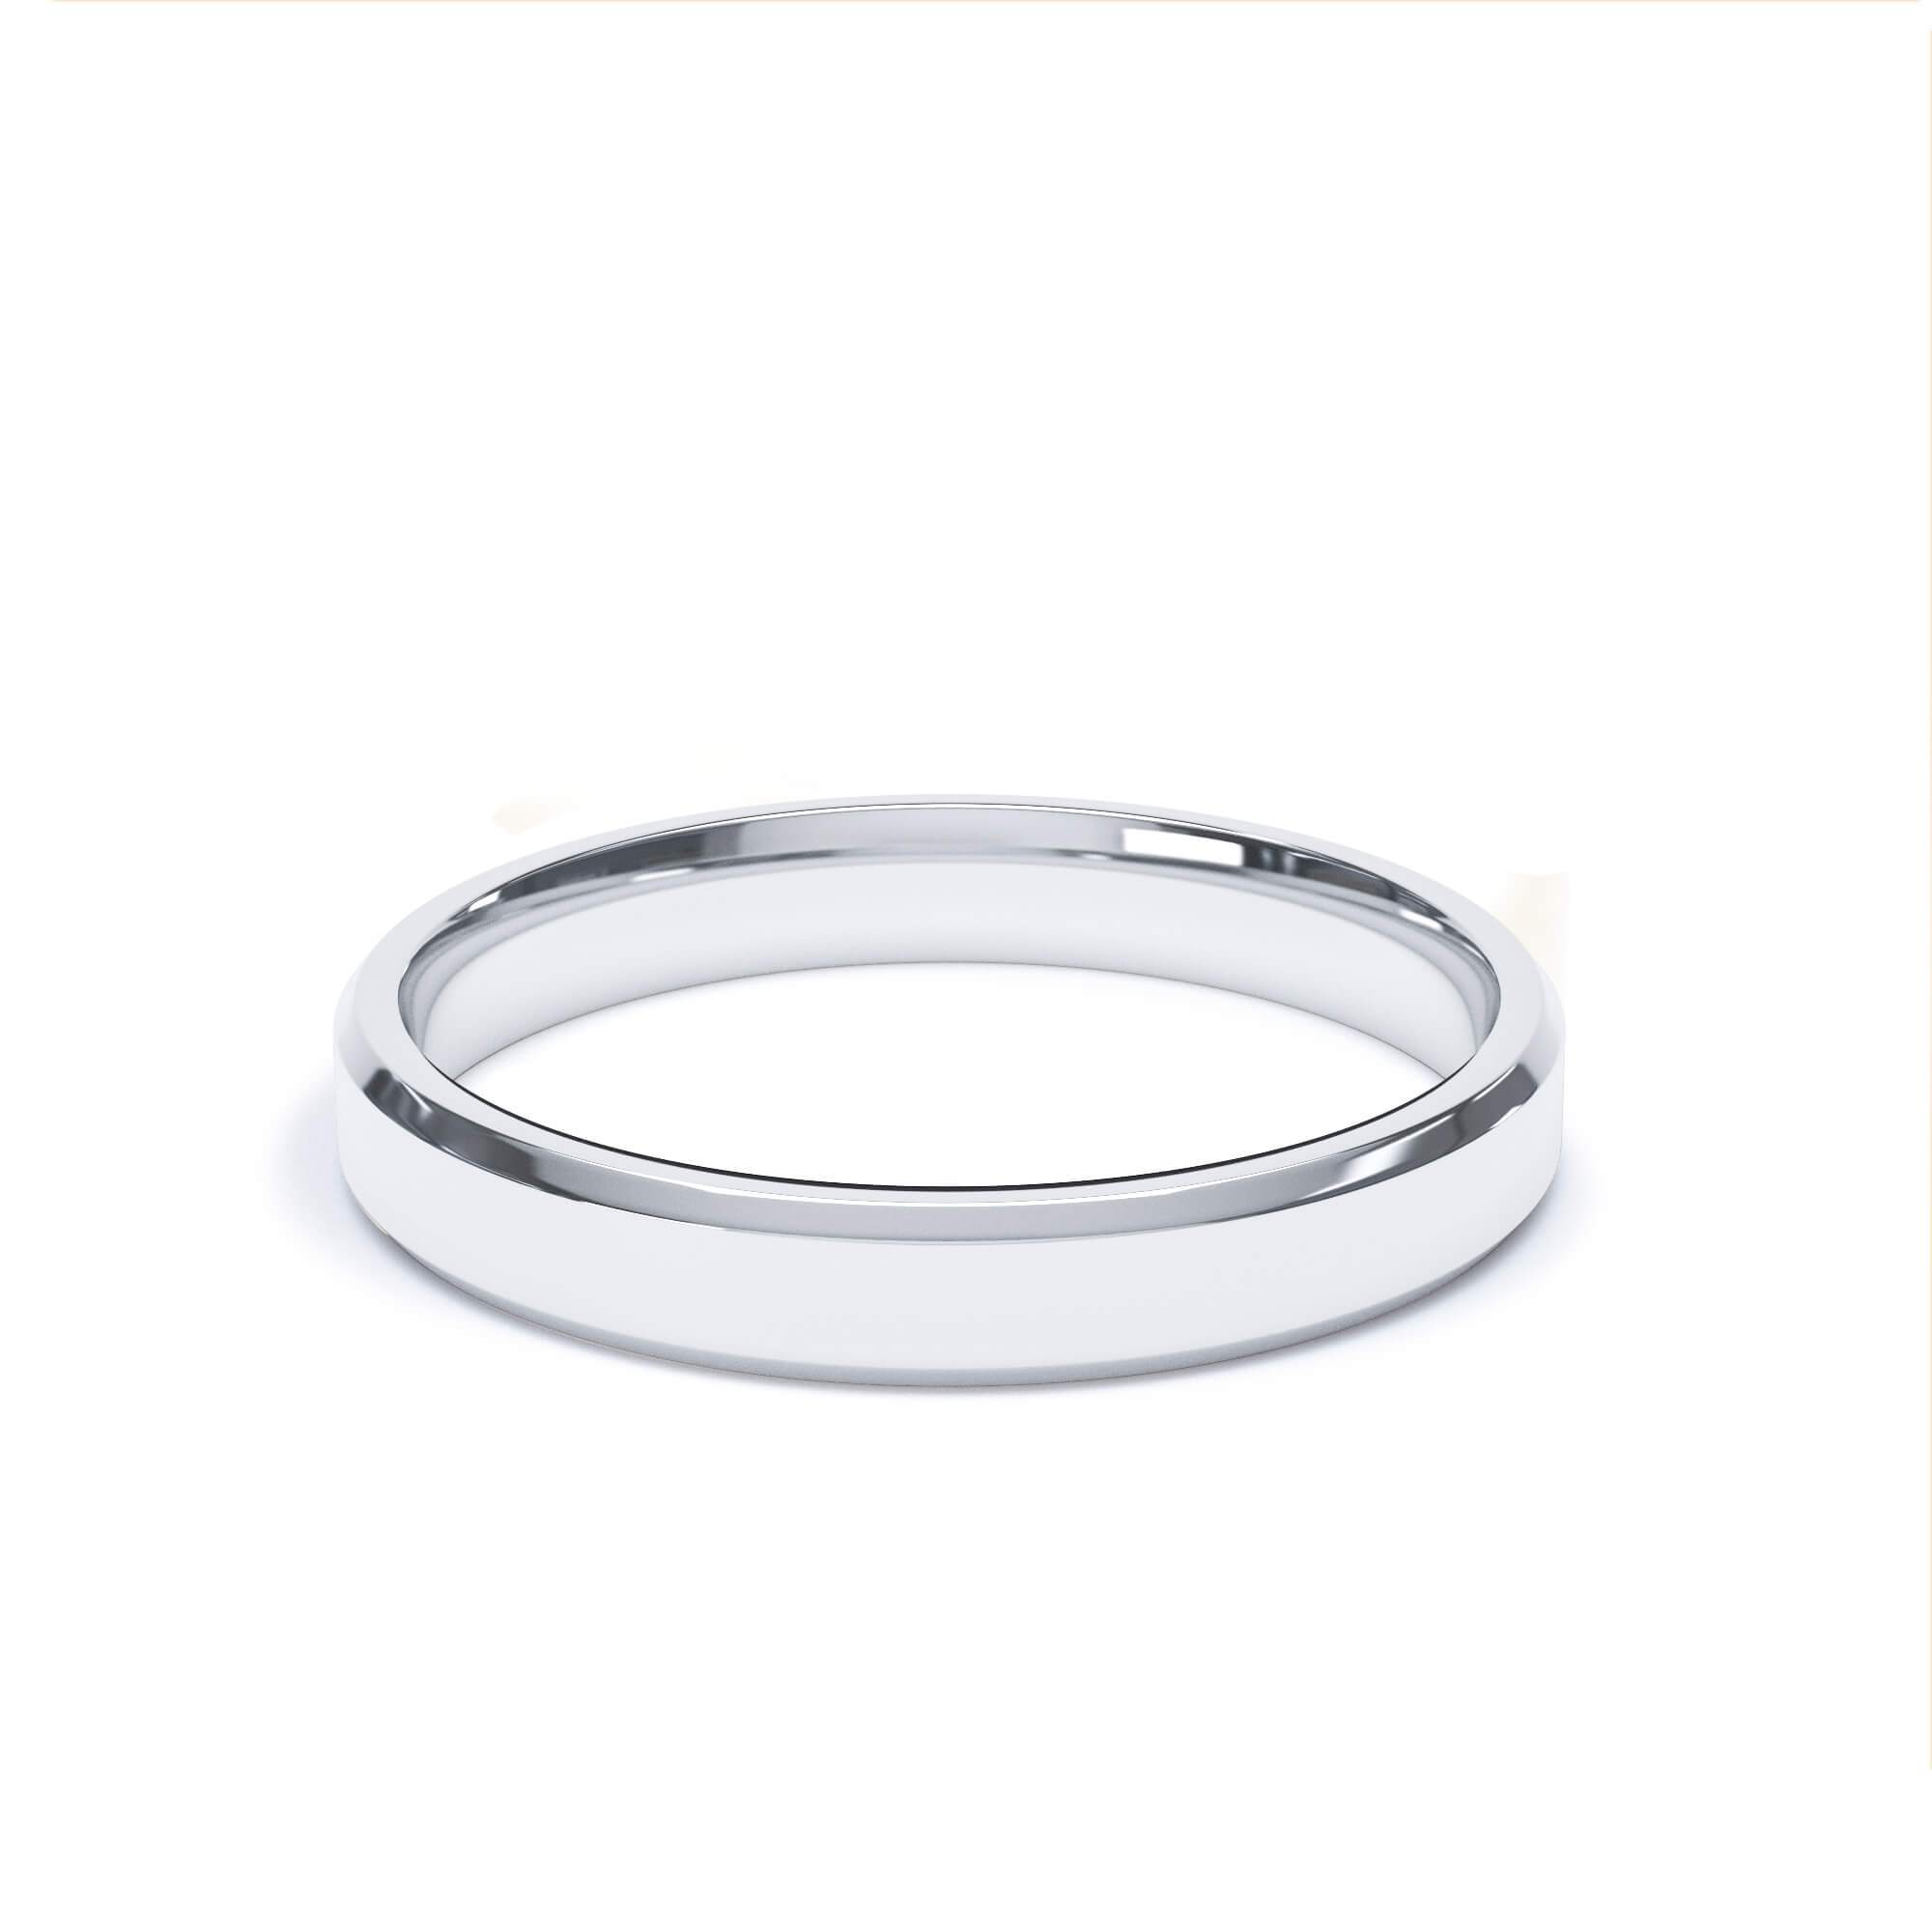 Lily Arkwright Wedding Bands 3.0mm / 18k White Gold Women's Plain Wedding Band Bevelled Edge Profile 18k White Gold